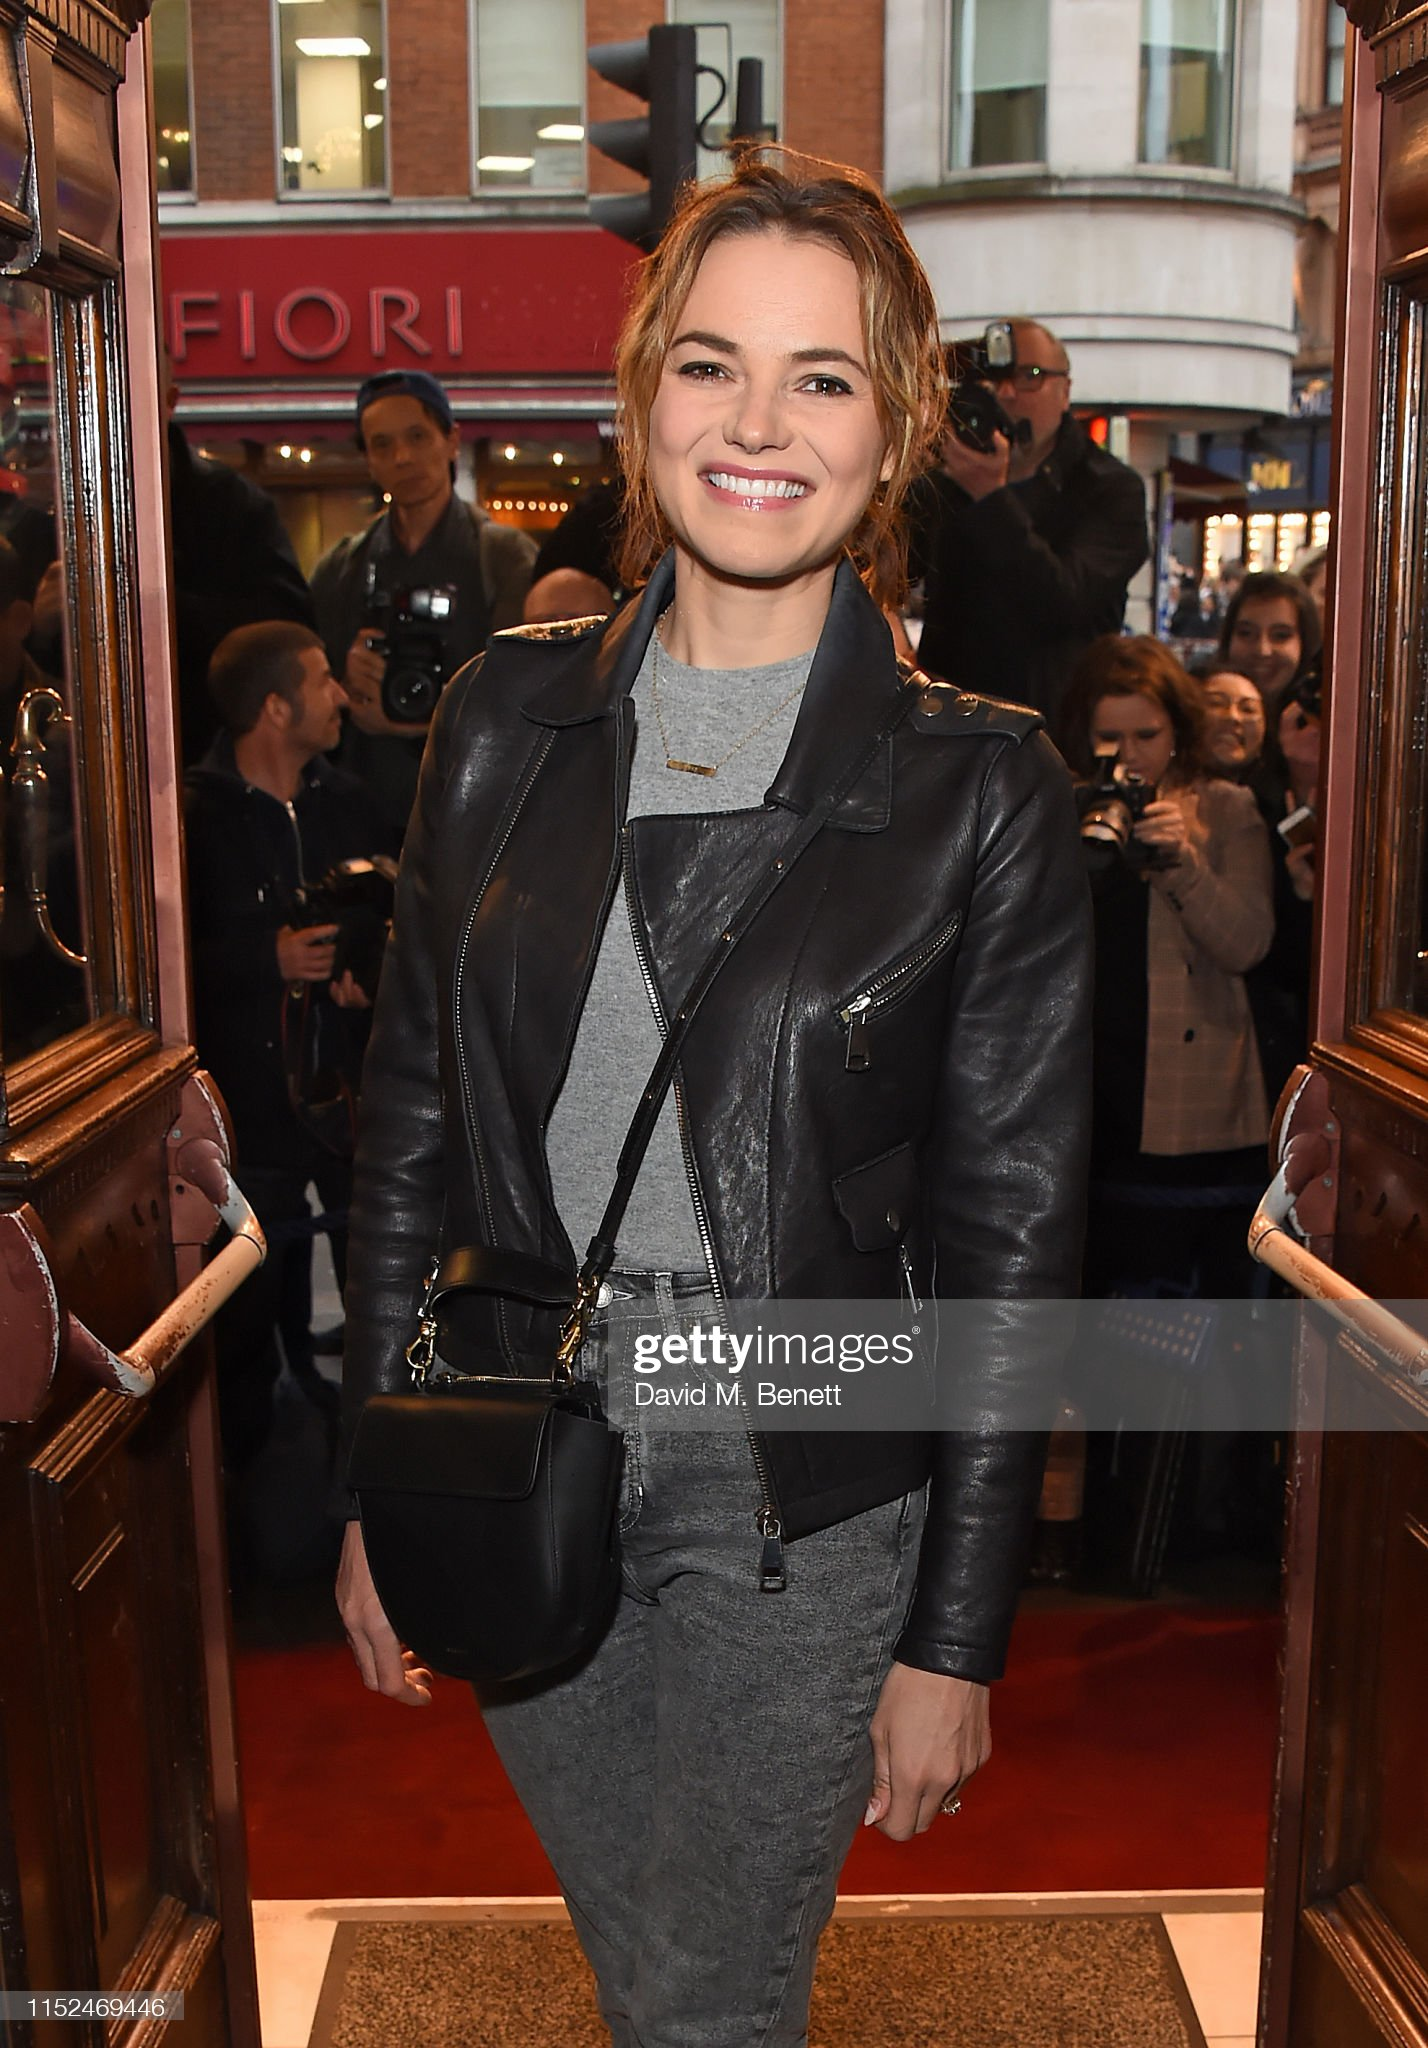 kara-tointon-arrives-at-the-press-night-performance-of-the-starry-at-picture-id1152469446?s=2048x2048